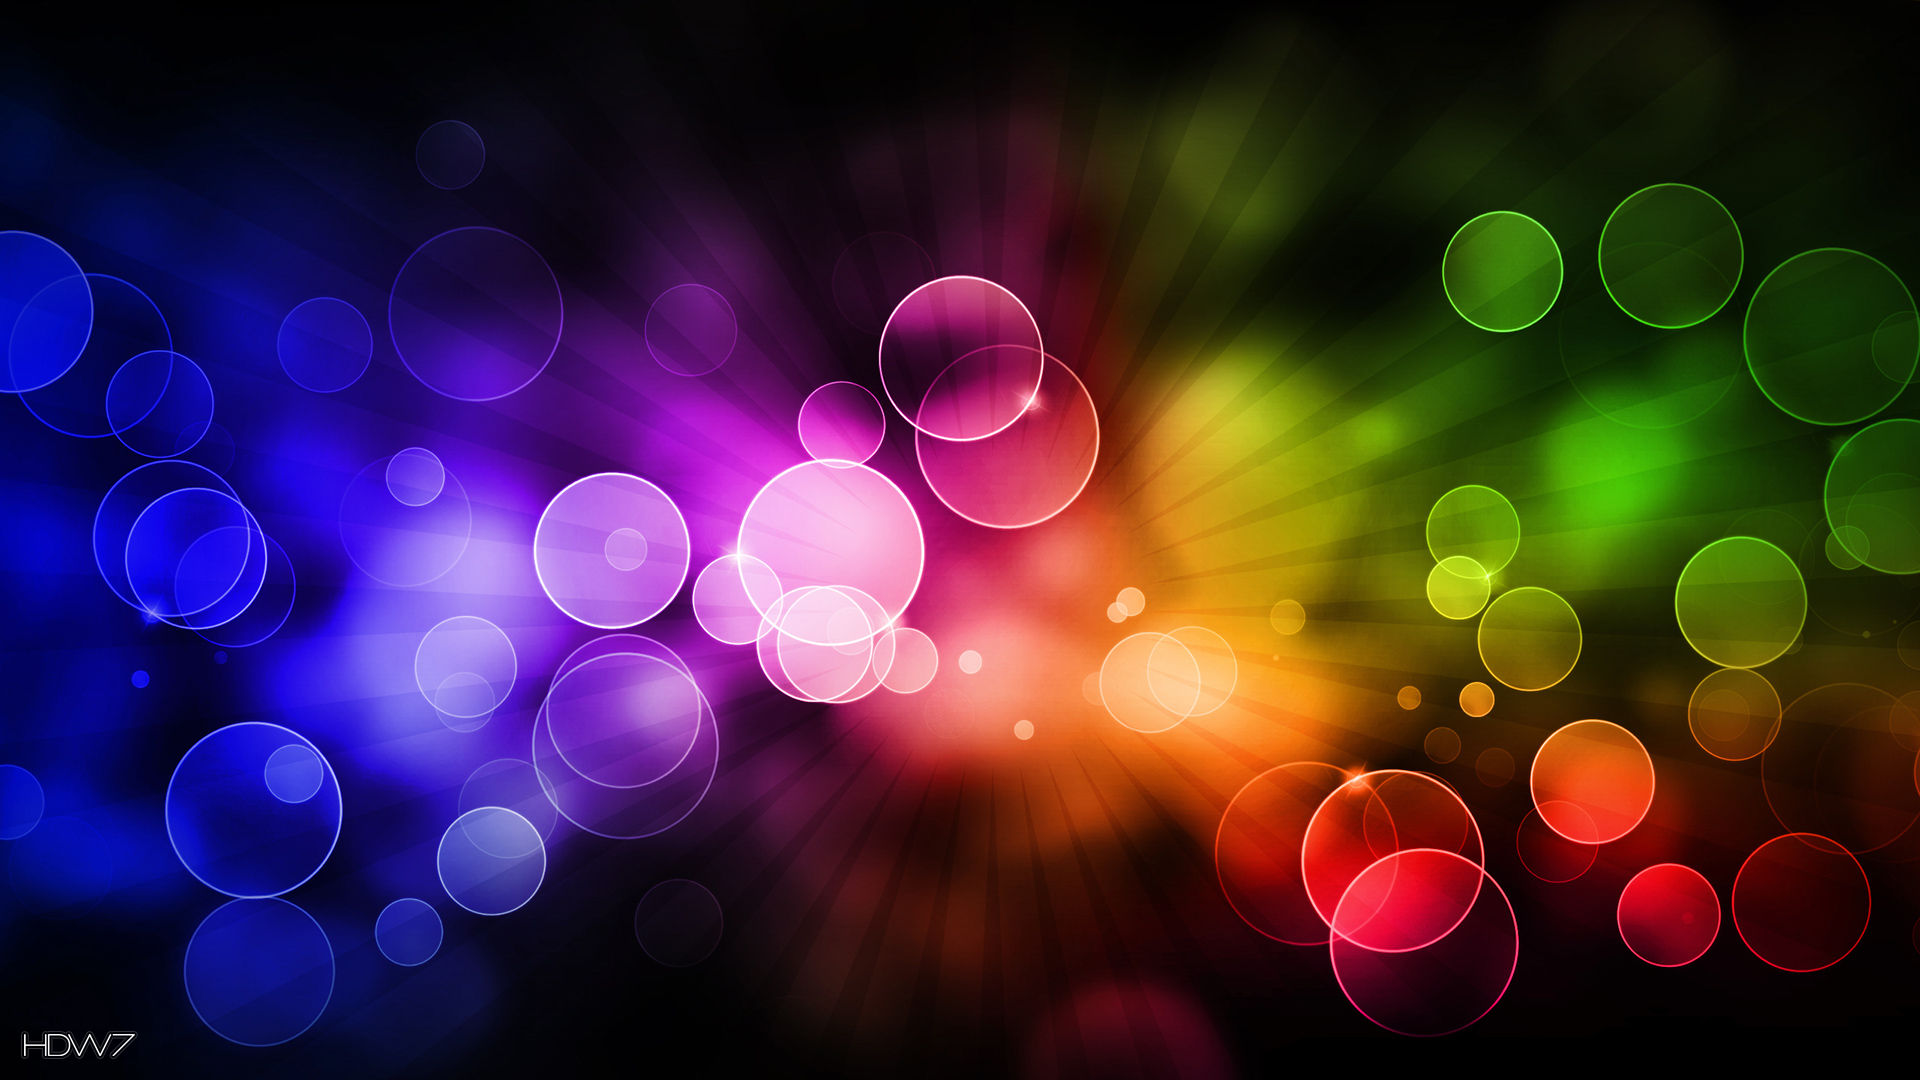 Free Wallpaper Background bokeh abstract background free